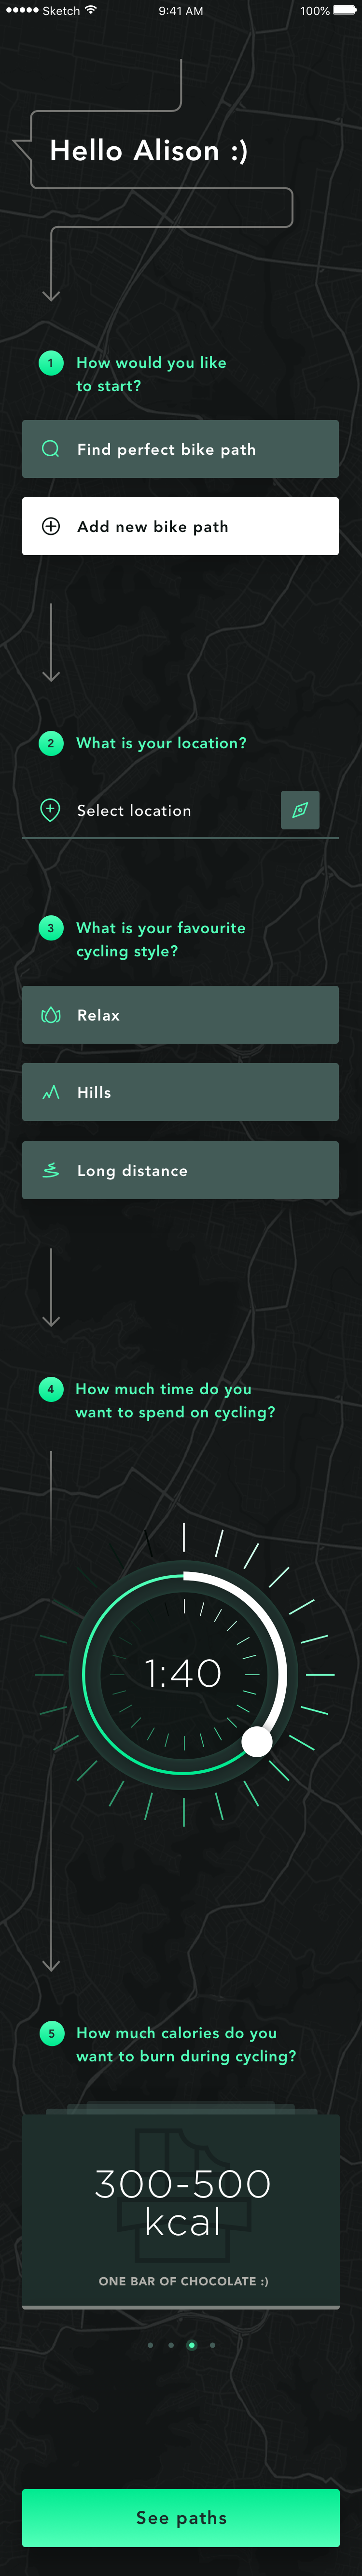 Cycling app path filters